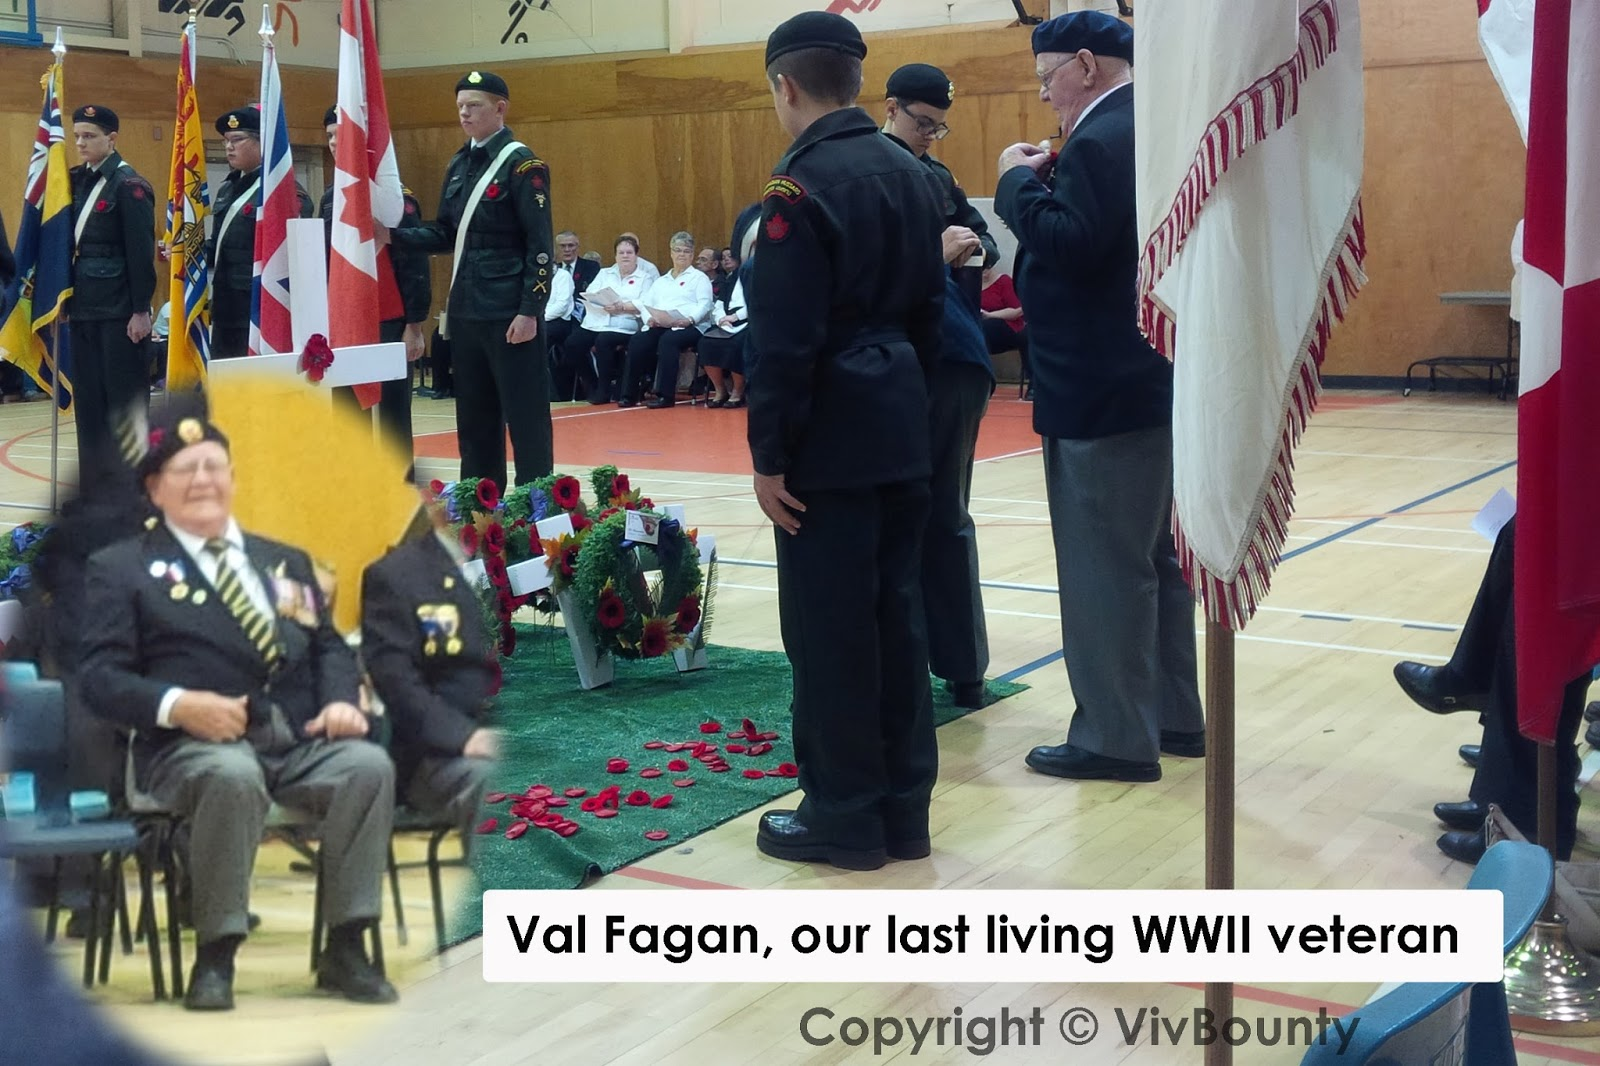 Val Fagan, Port Elgin's last living World War II veteran, VivBounty